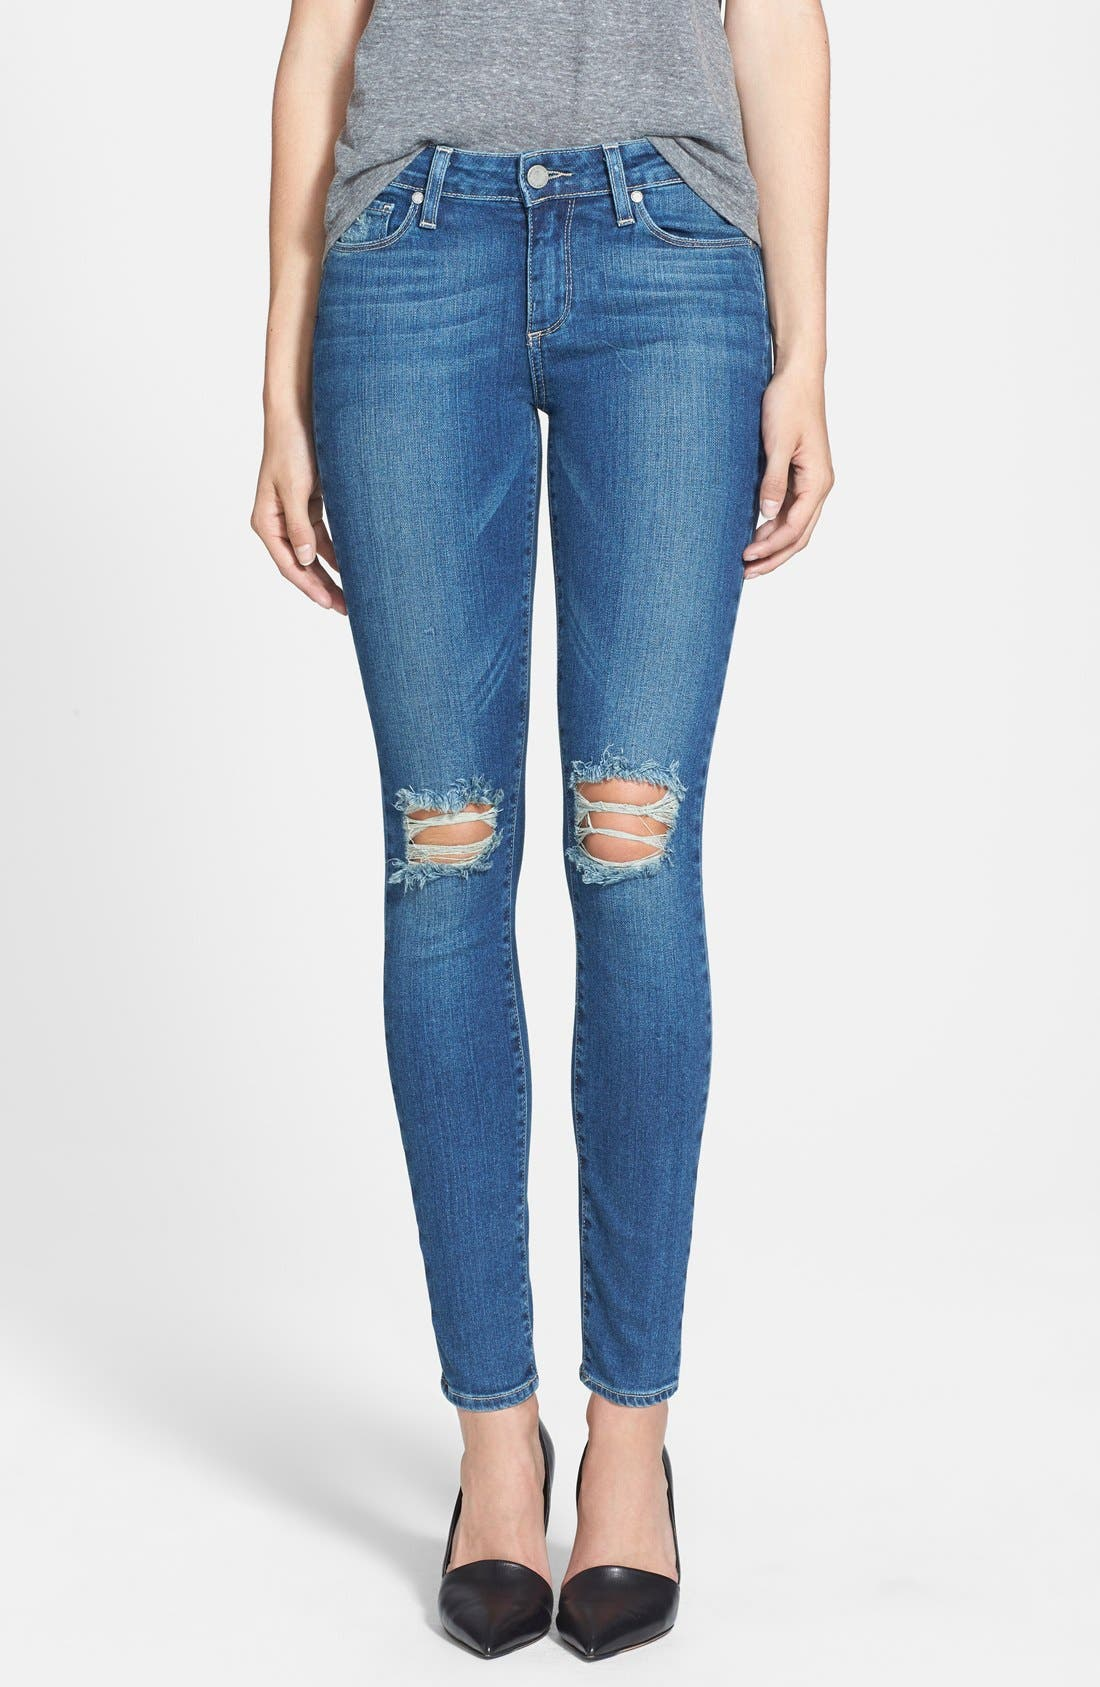 Main Image - Paige Denim 'Verdugo' Destroyed Ankle Skinny Jeans (Belmont)